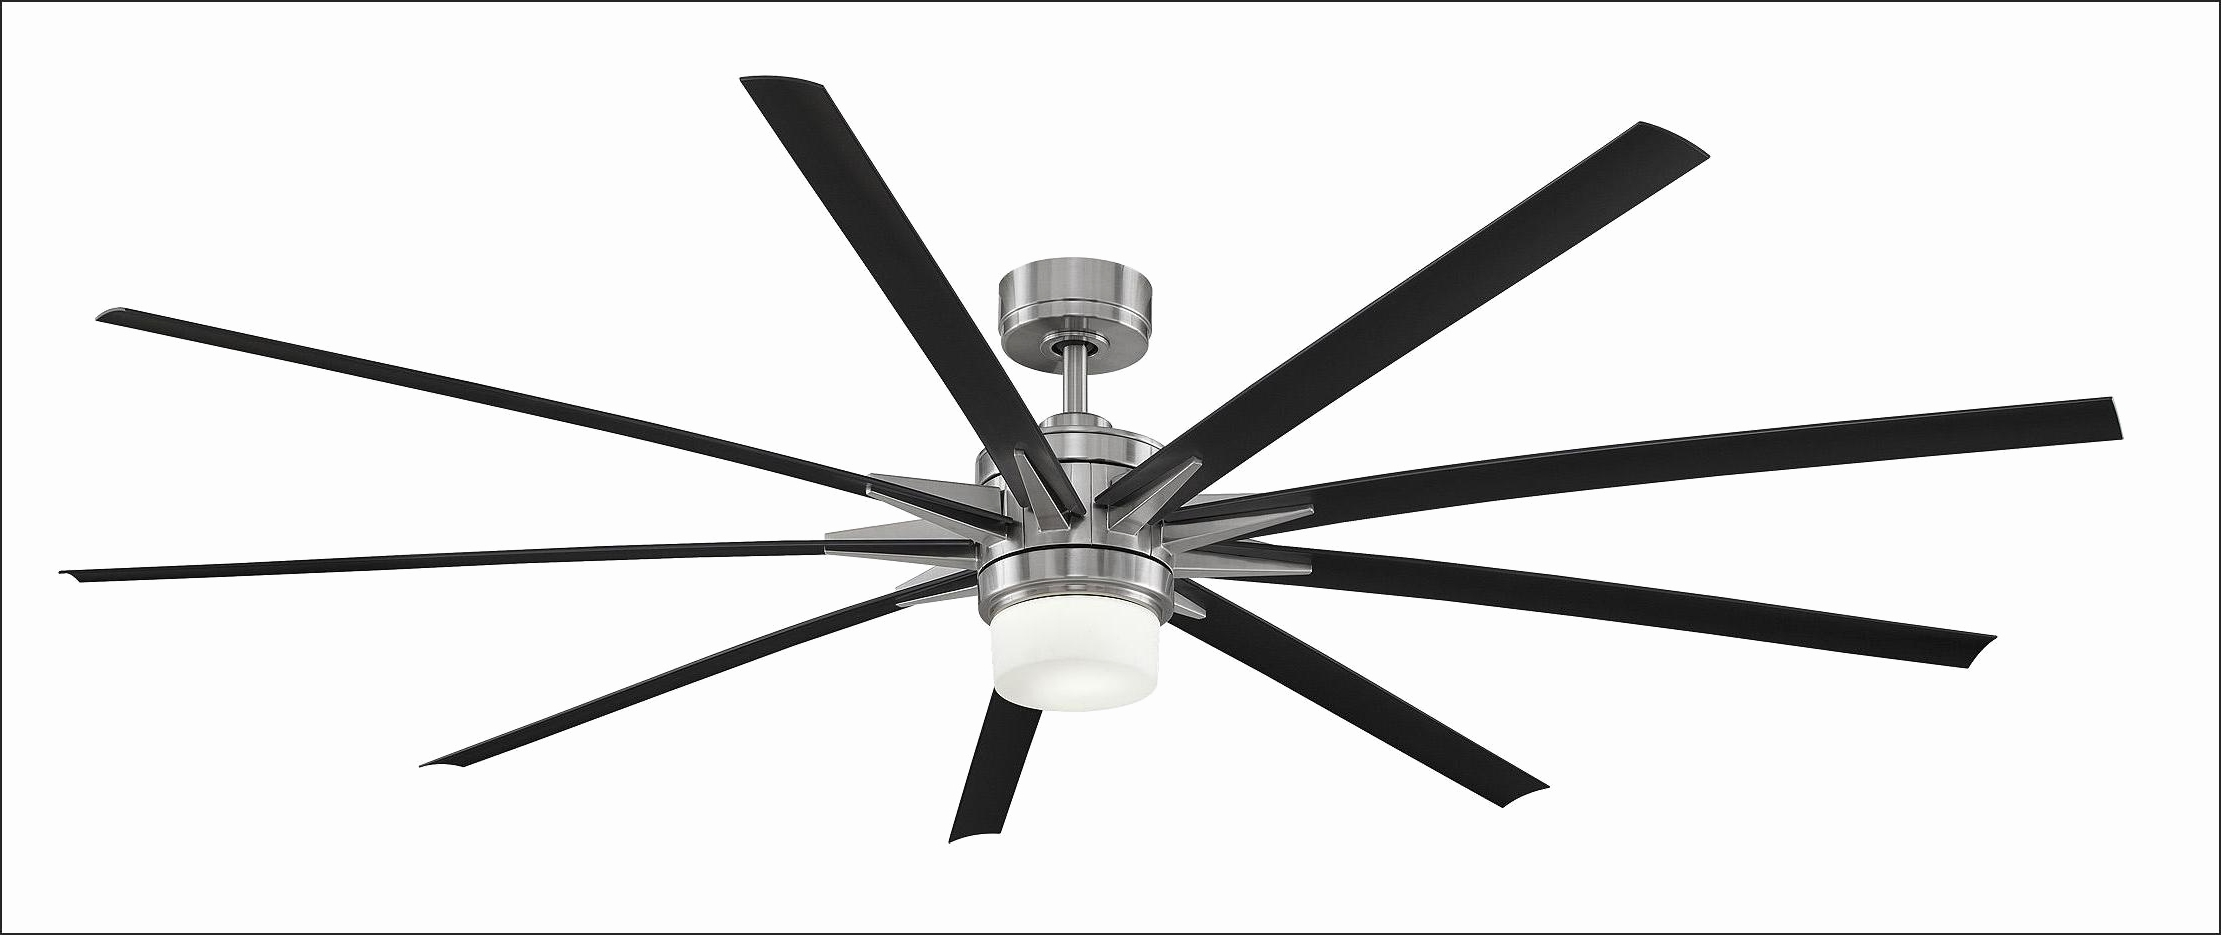 Current Double Ceiling Fan Lowes Fresh Furniture Lowes Outdoor Ceiling Fans Regarding Outdoor Ceiling Fans At Lowes (View 15 of 20)